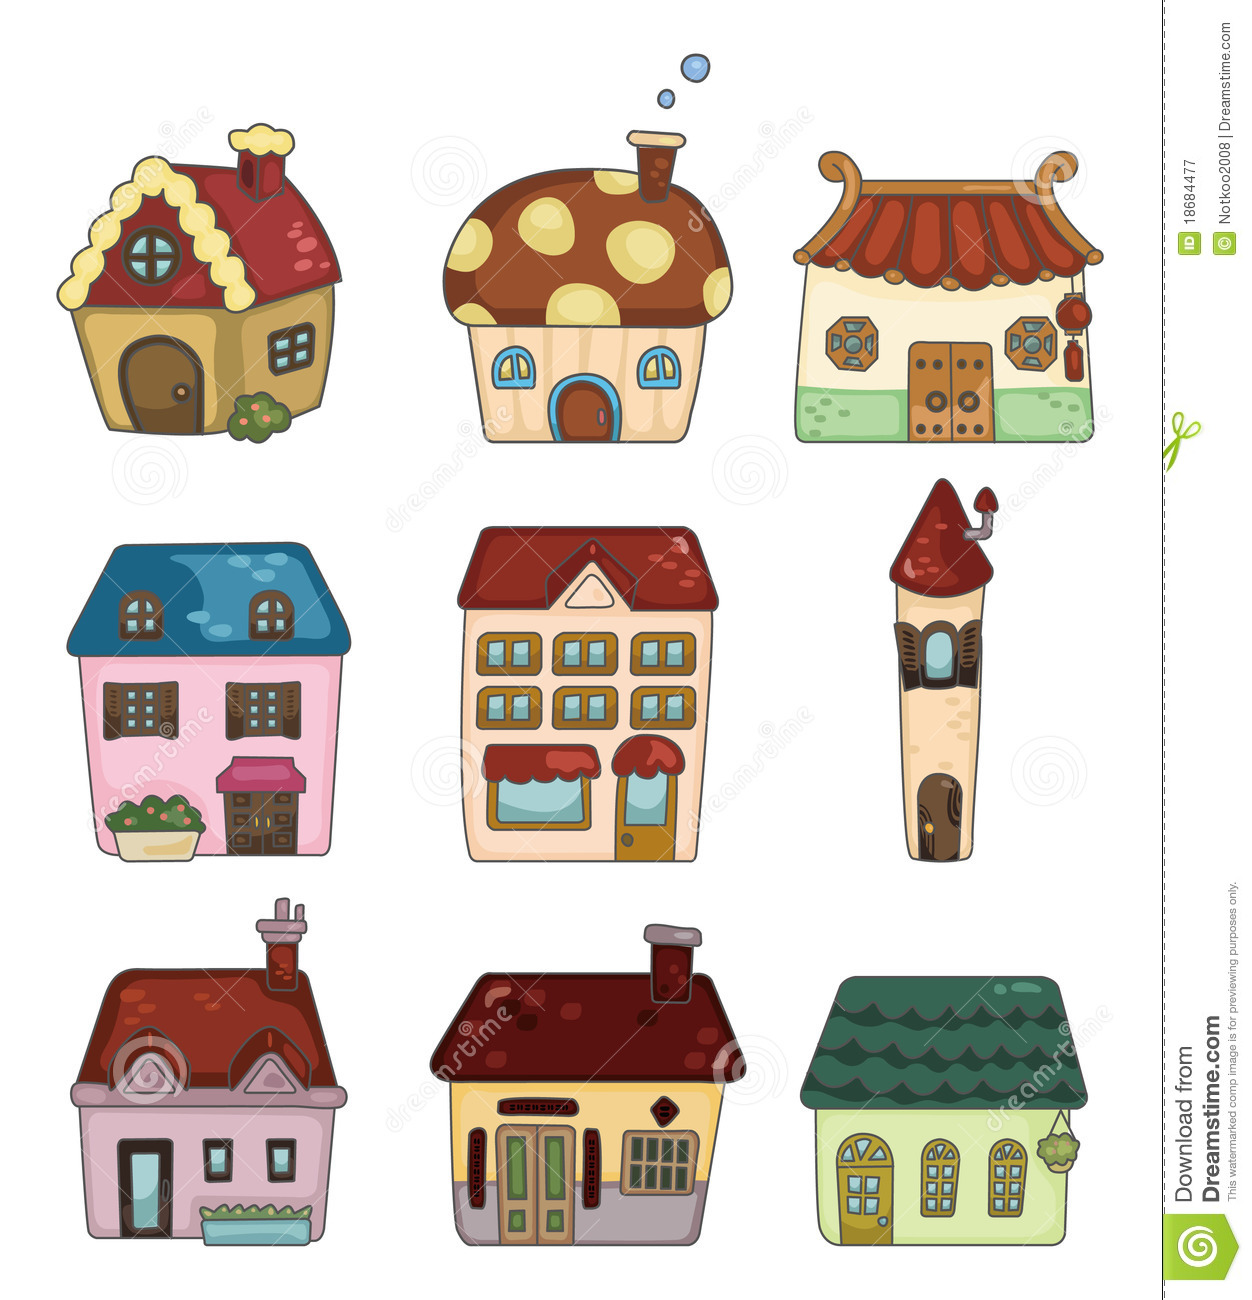 Cartoon house icon stock vector. Illustration of building ...